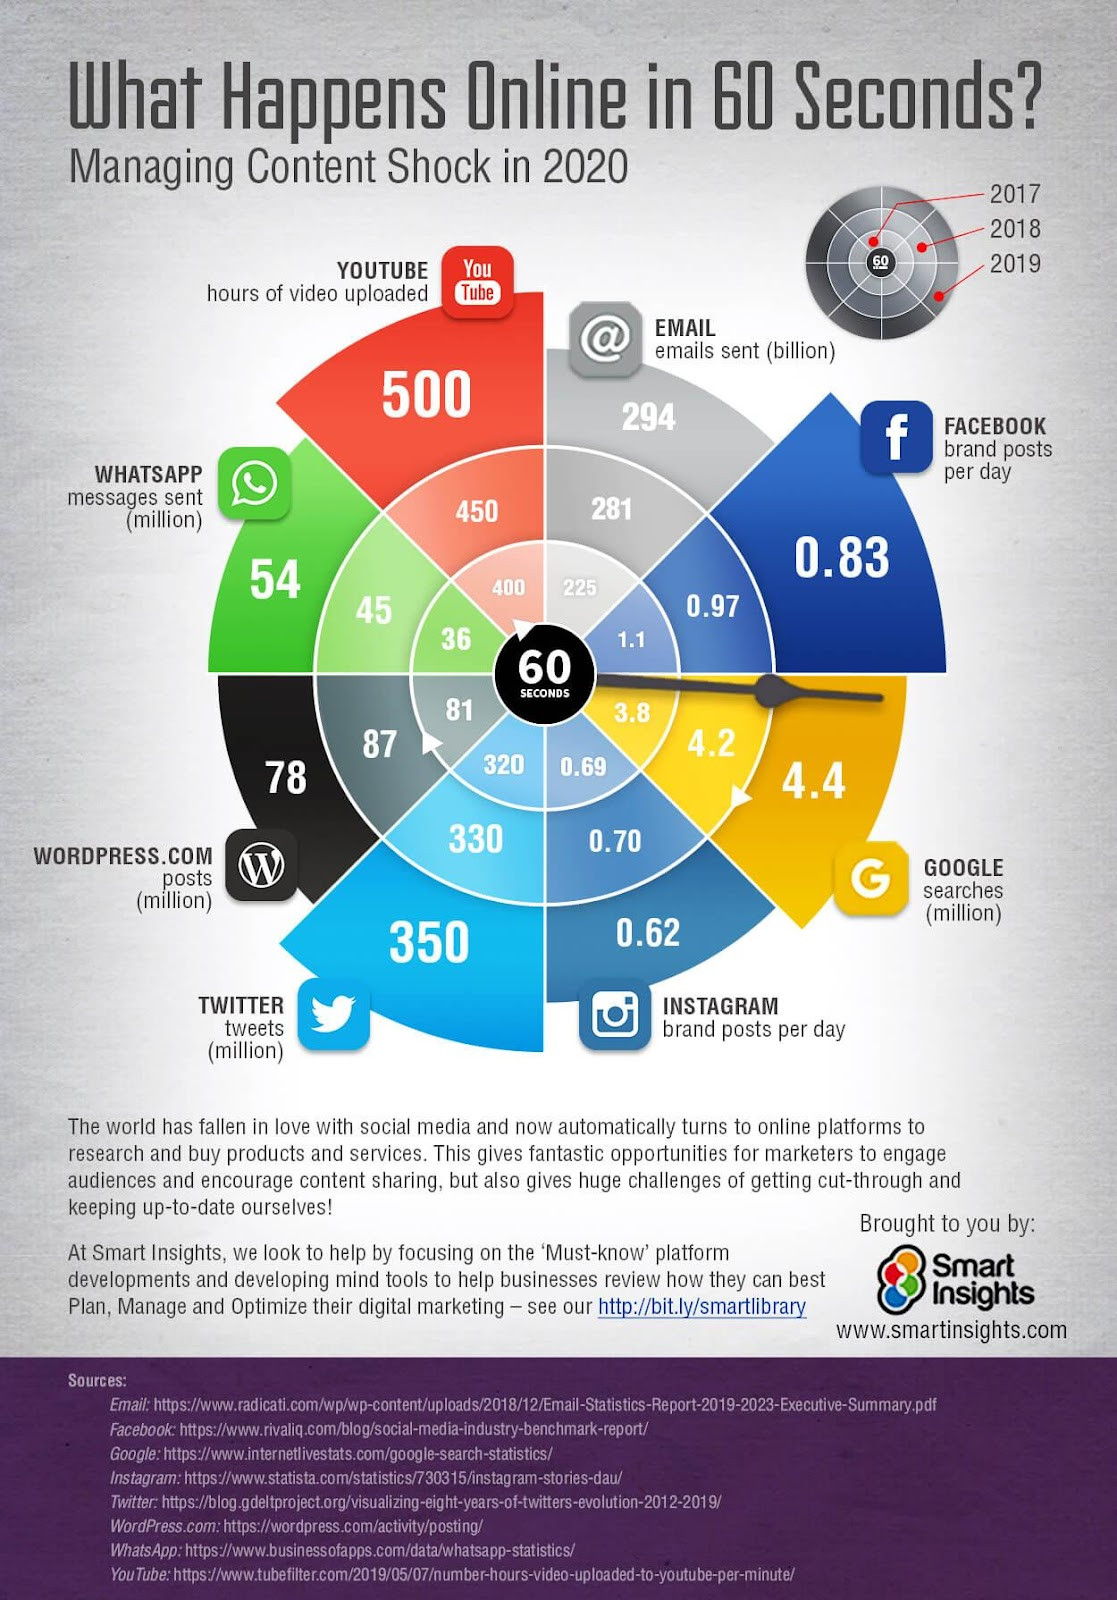 What Happens Online in 60 Seconds infographic for 2017, 2018 and 2019.